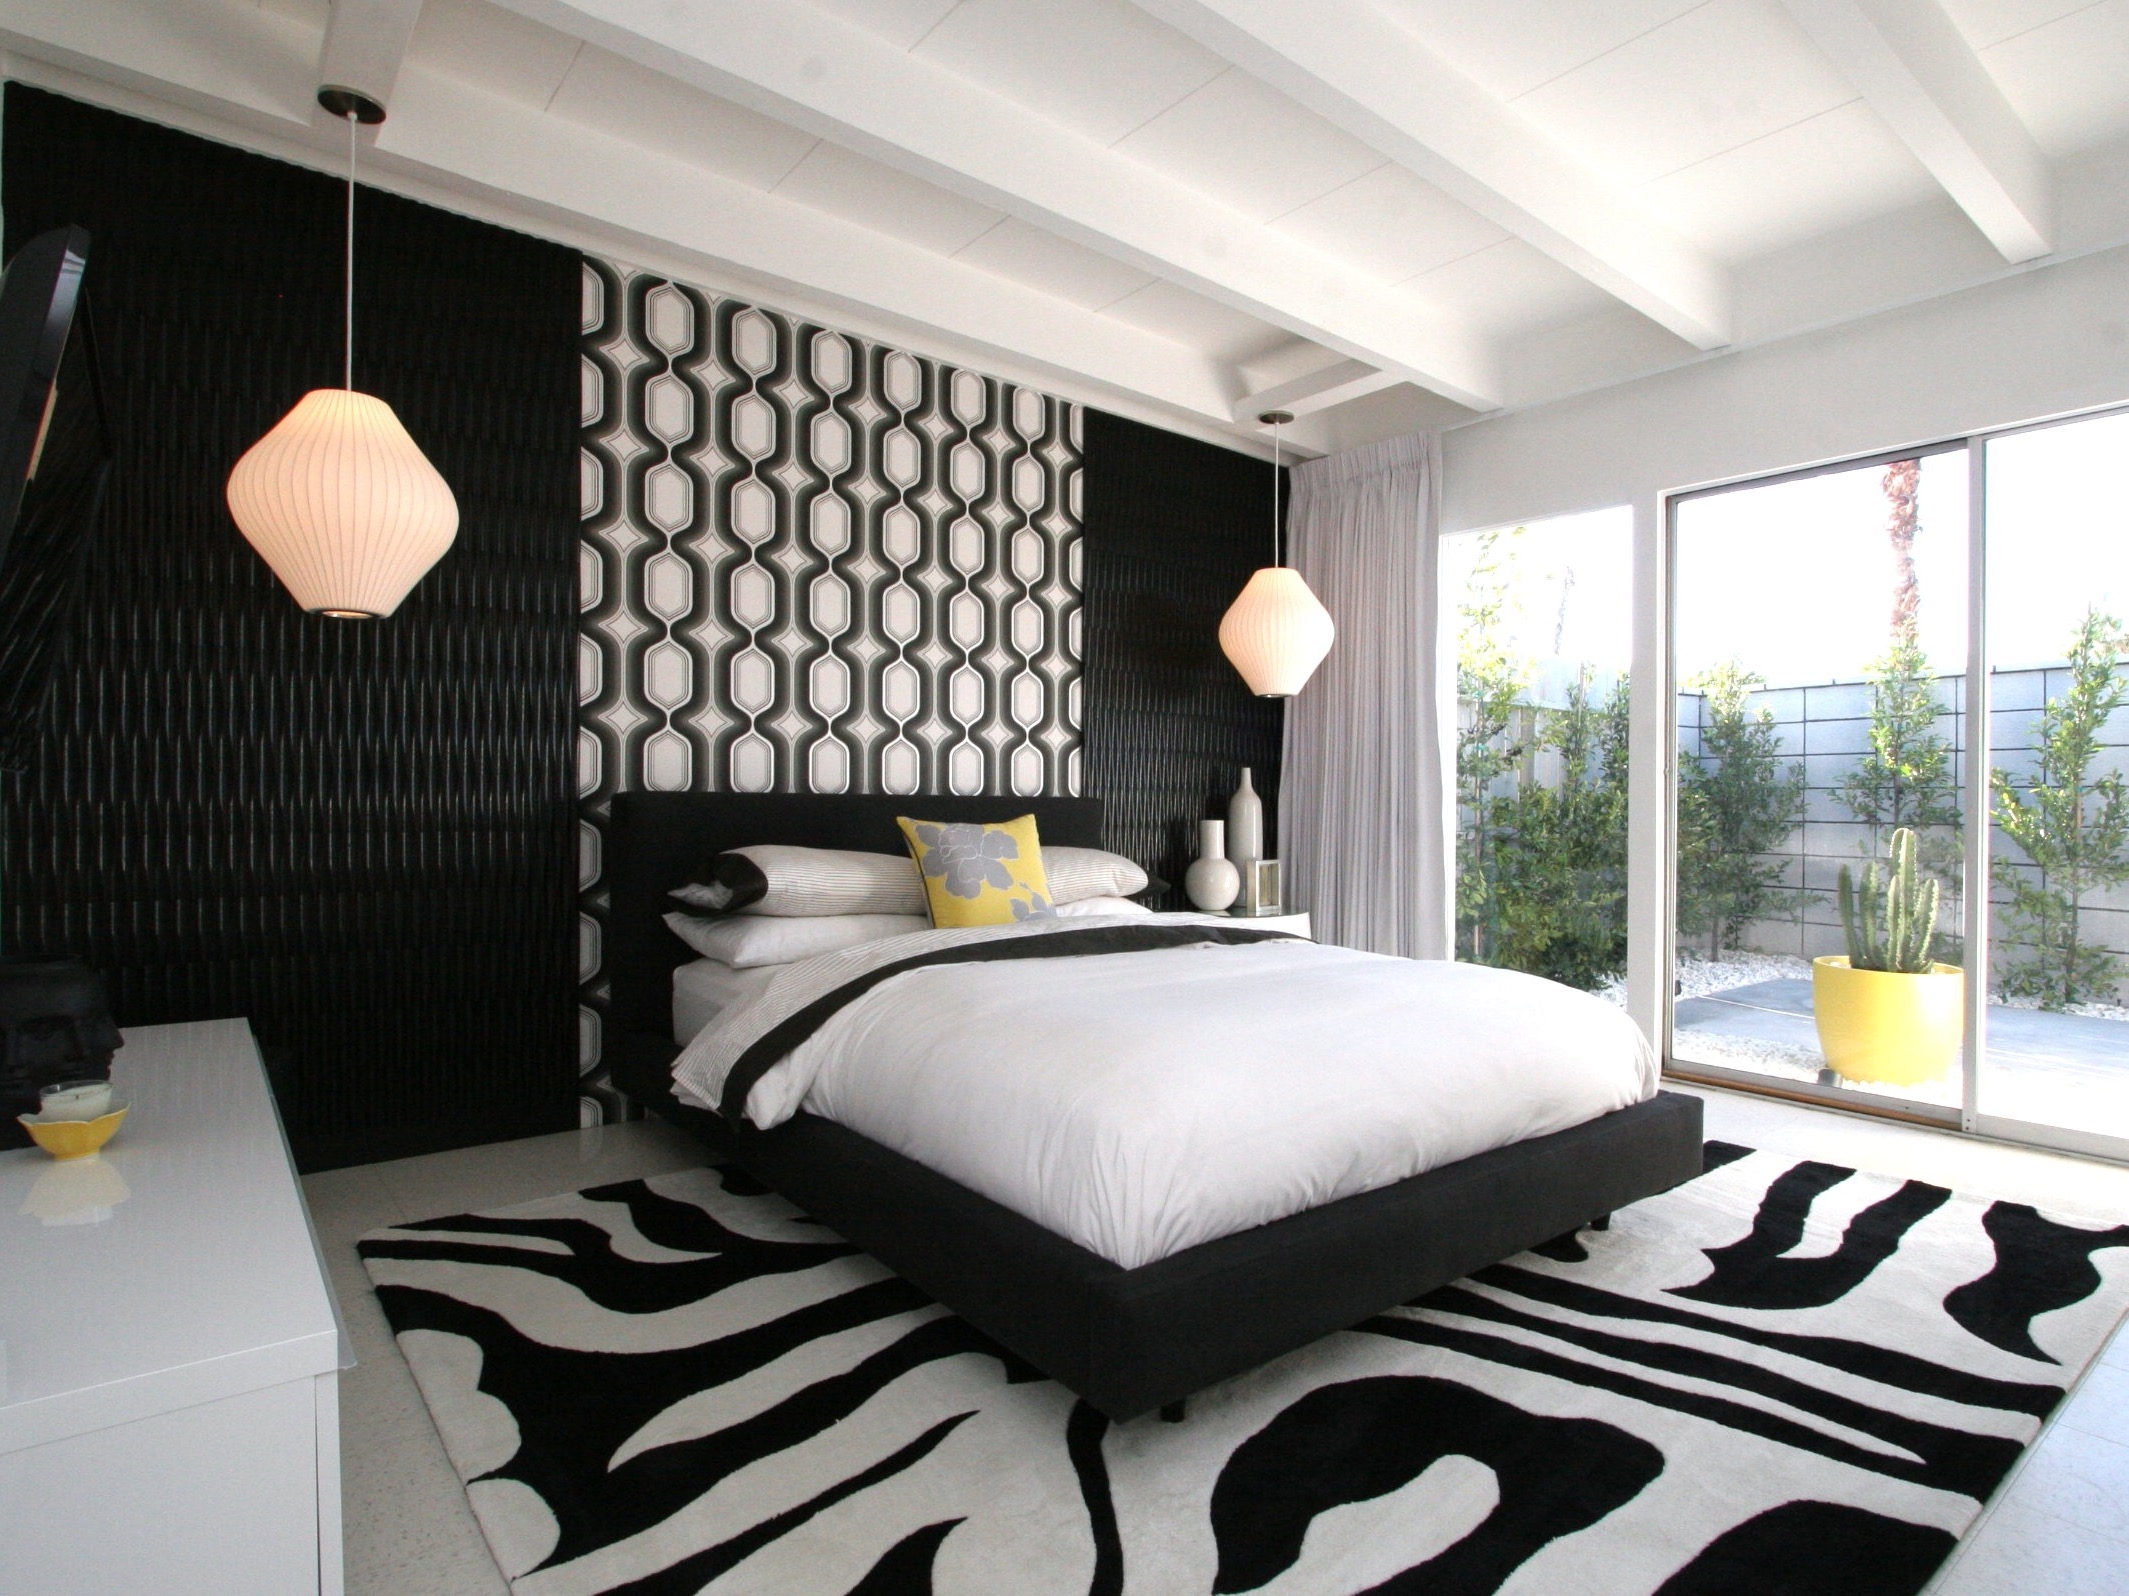 Modern Furniture For Black And White Bedroom (View 32 of 42)